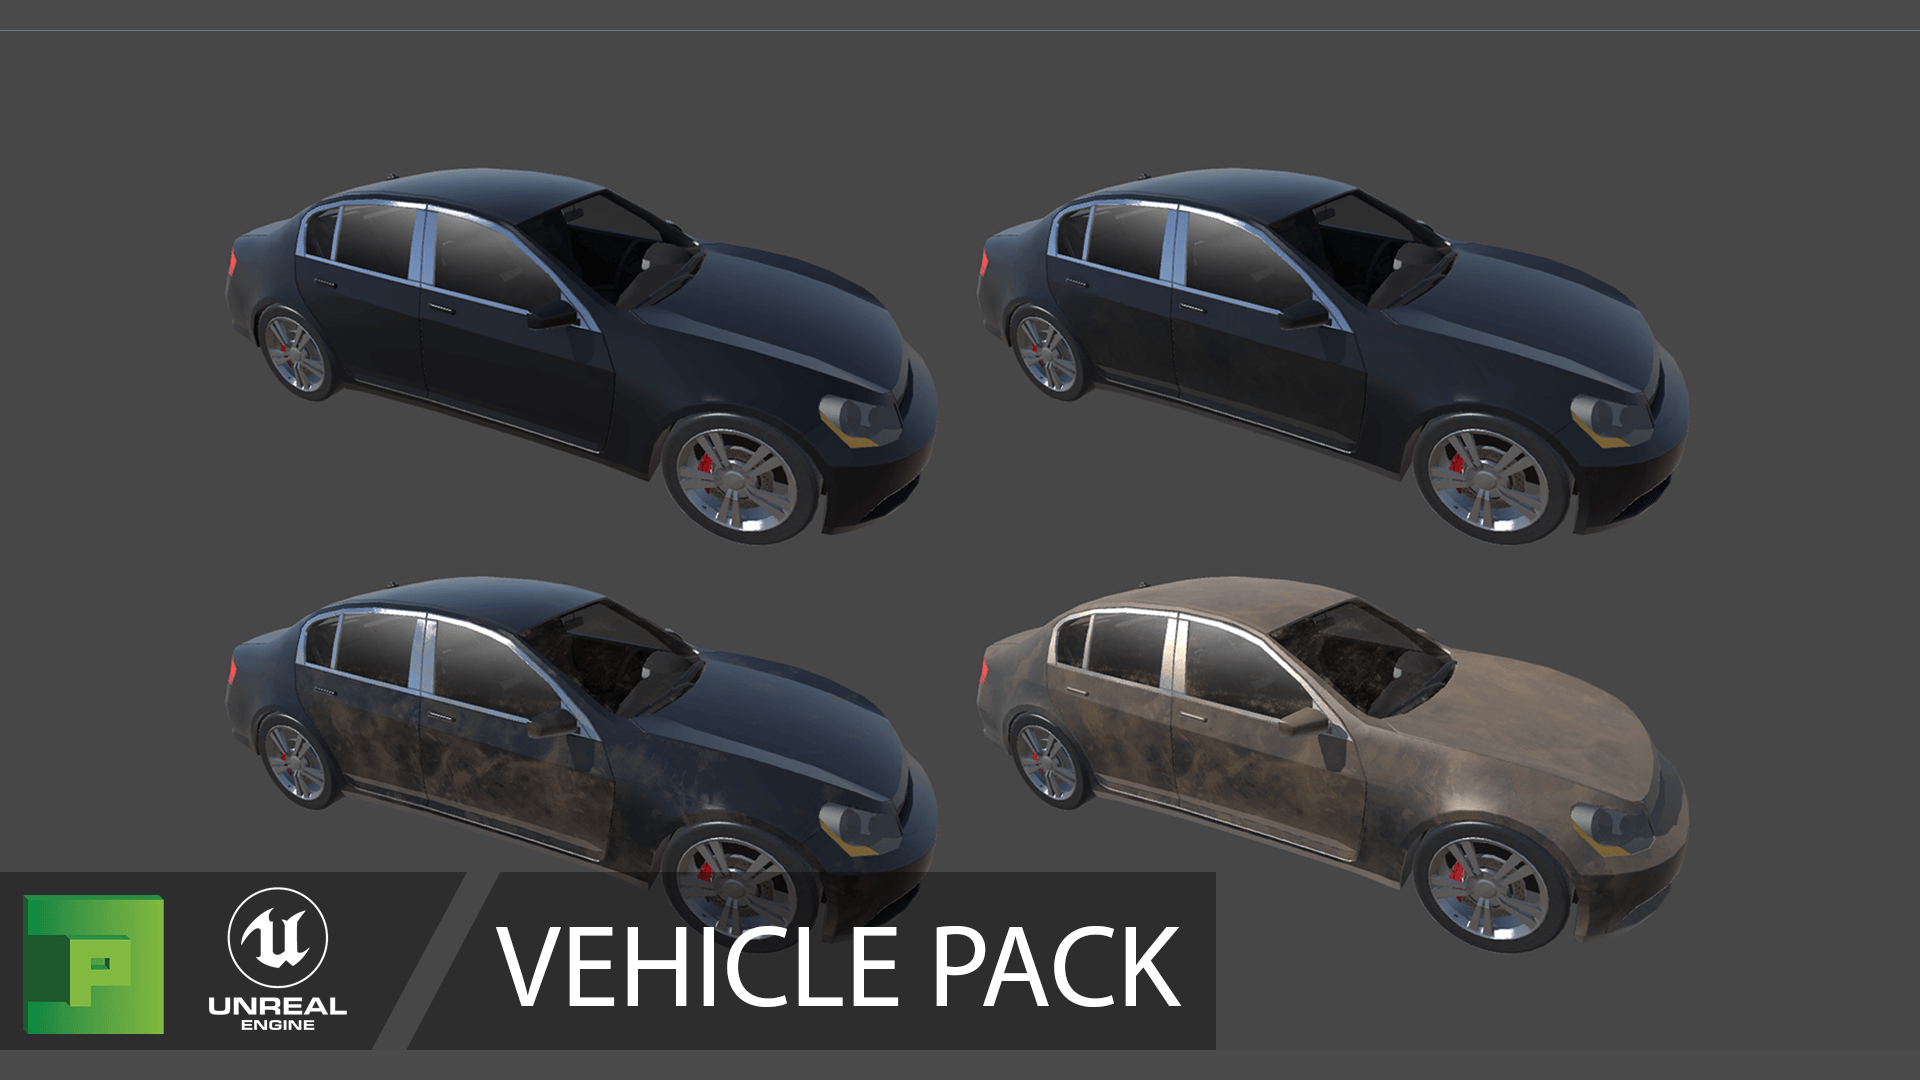 VehiclePack_12